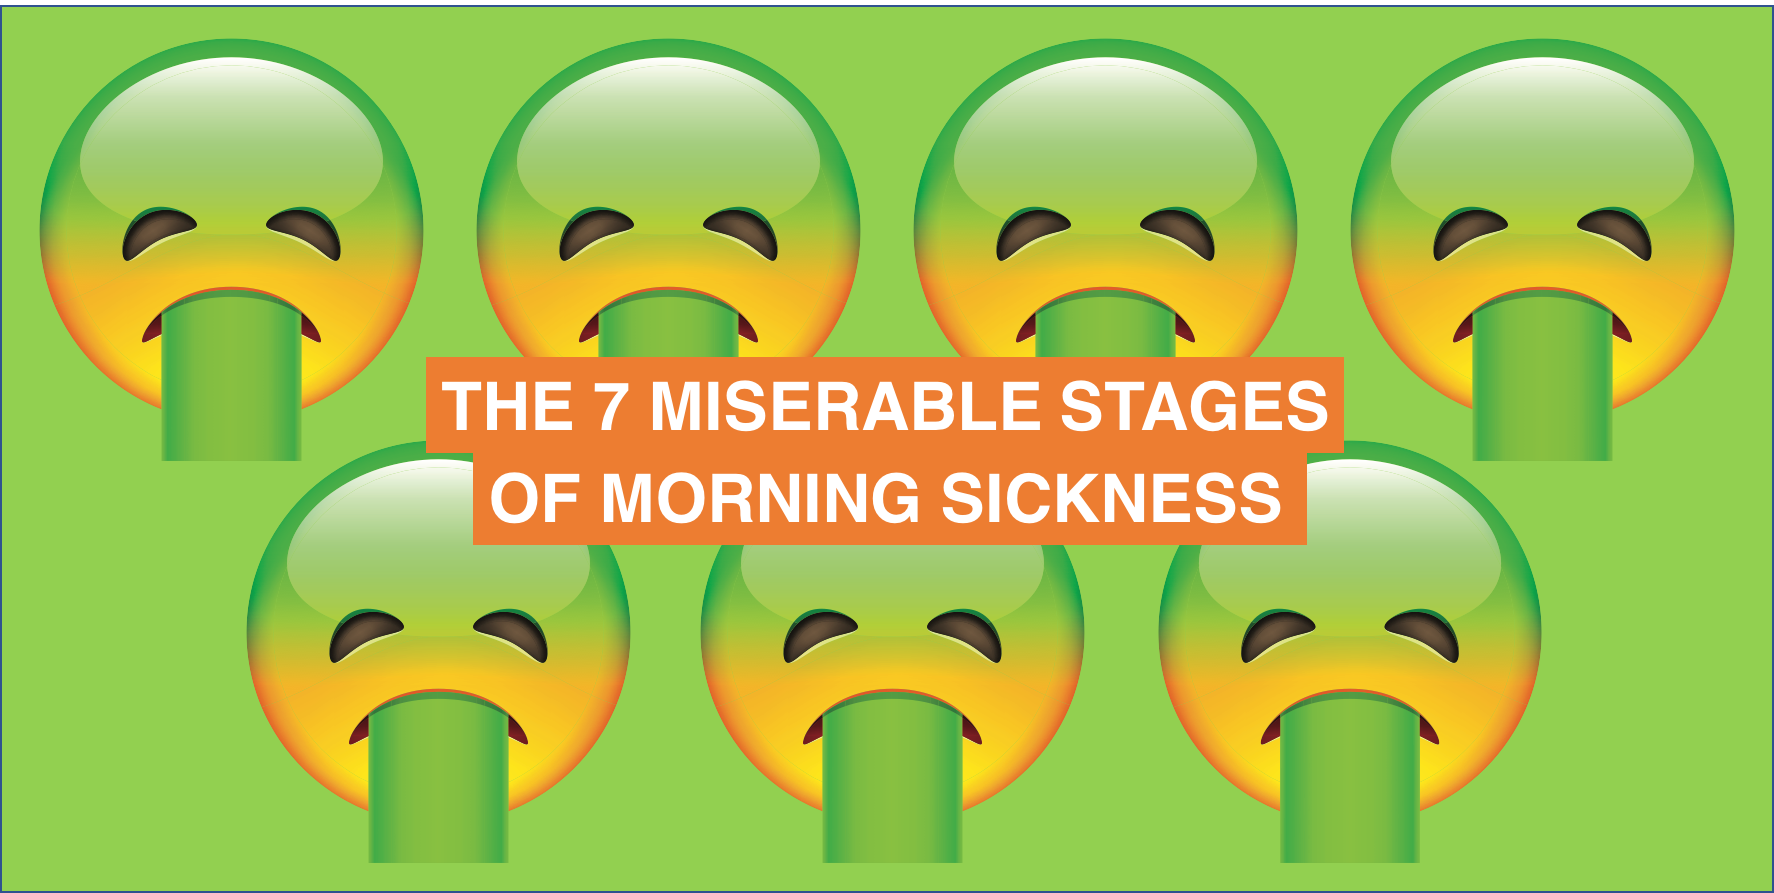 The 7 stages of morning sickness